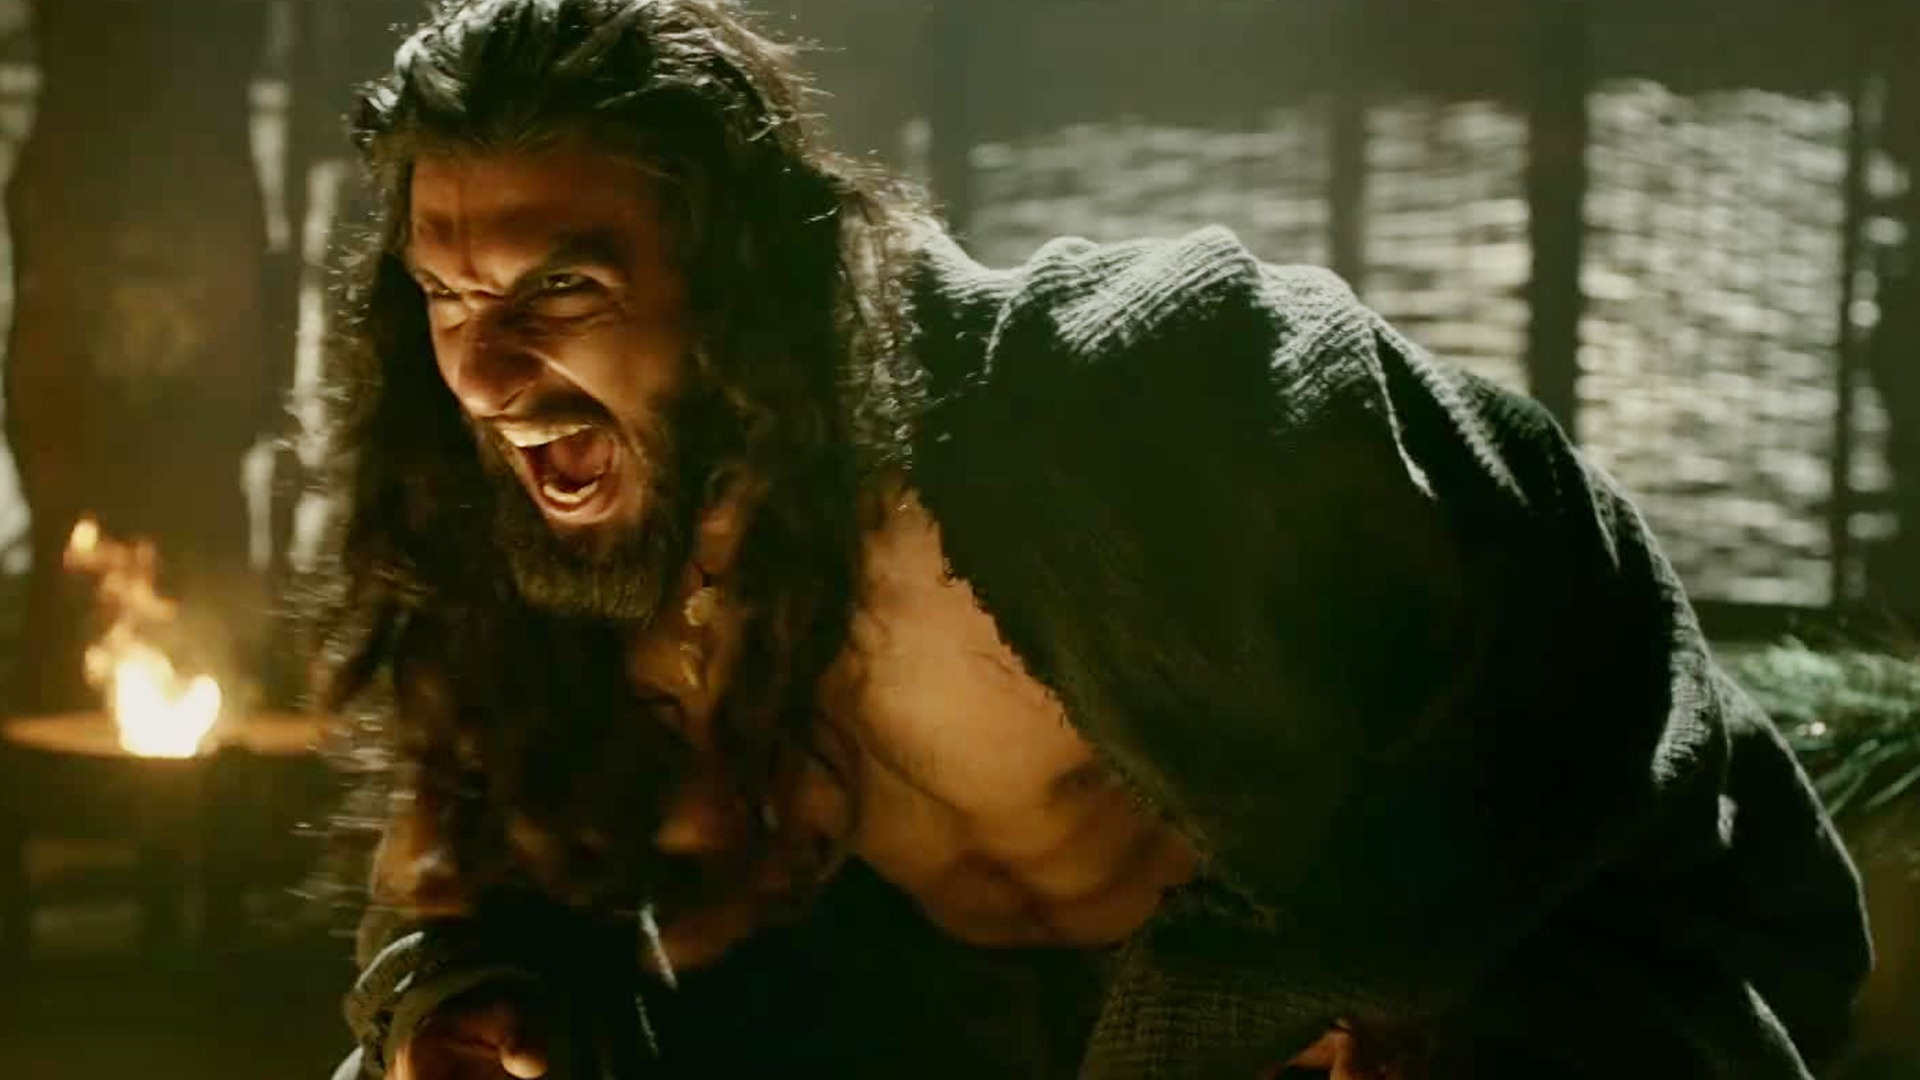 Ranveer is the soul of Padmaavat... In fact the film should have been called  Allaudin